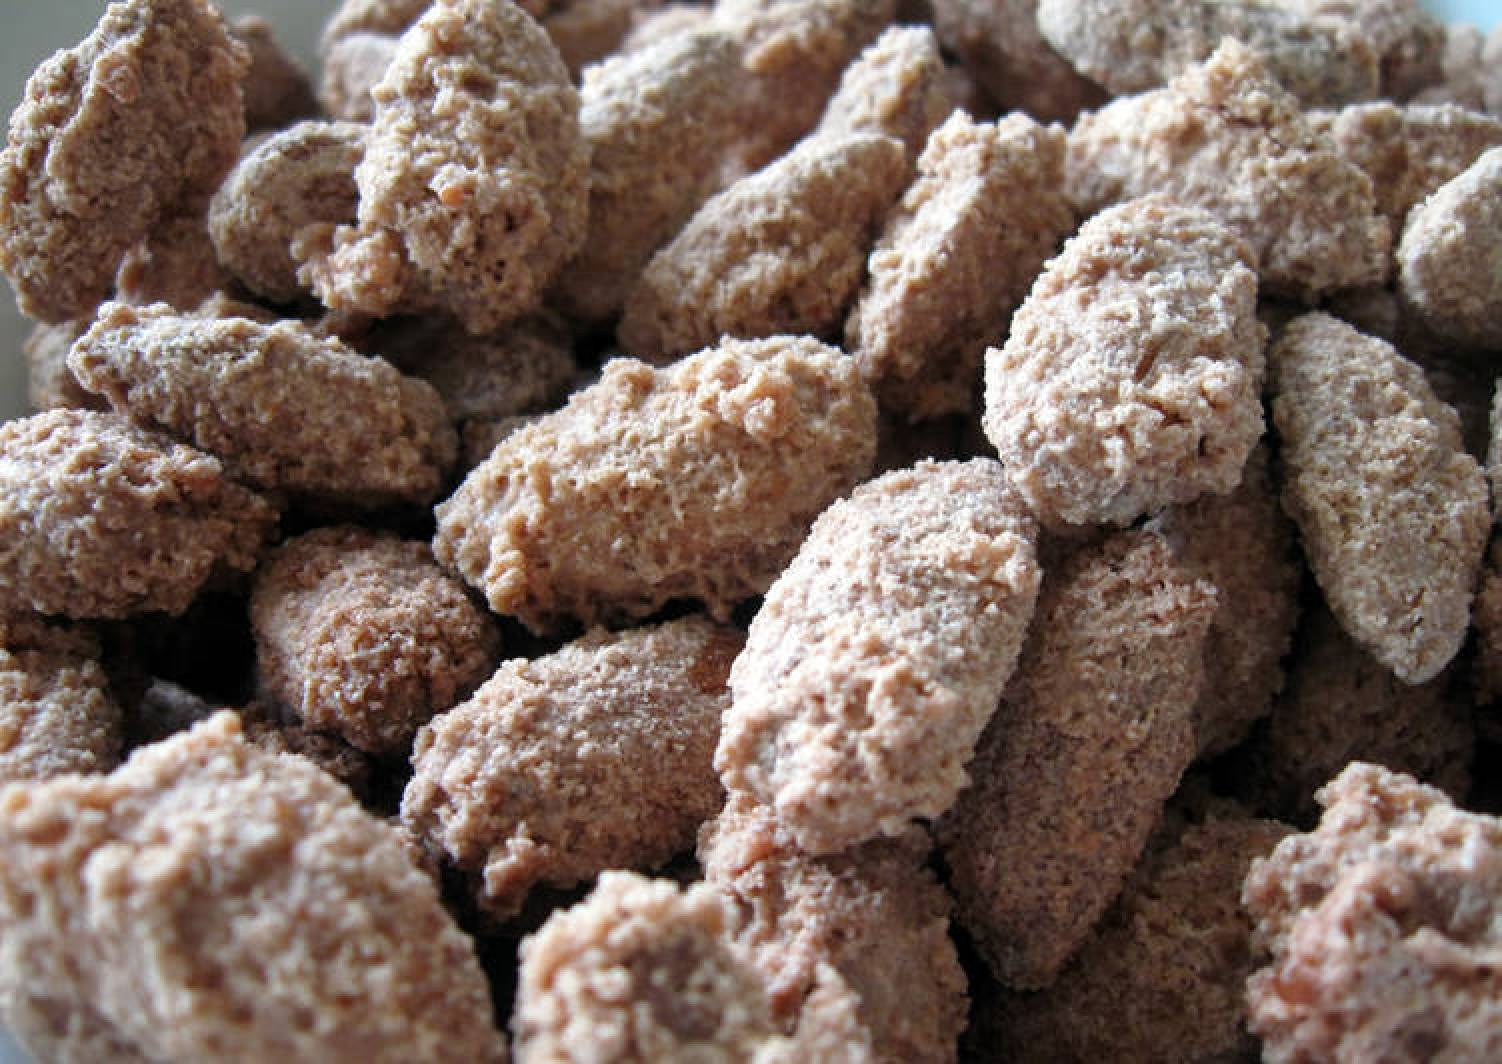 Cinnamon Sugar Almonds